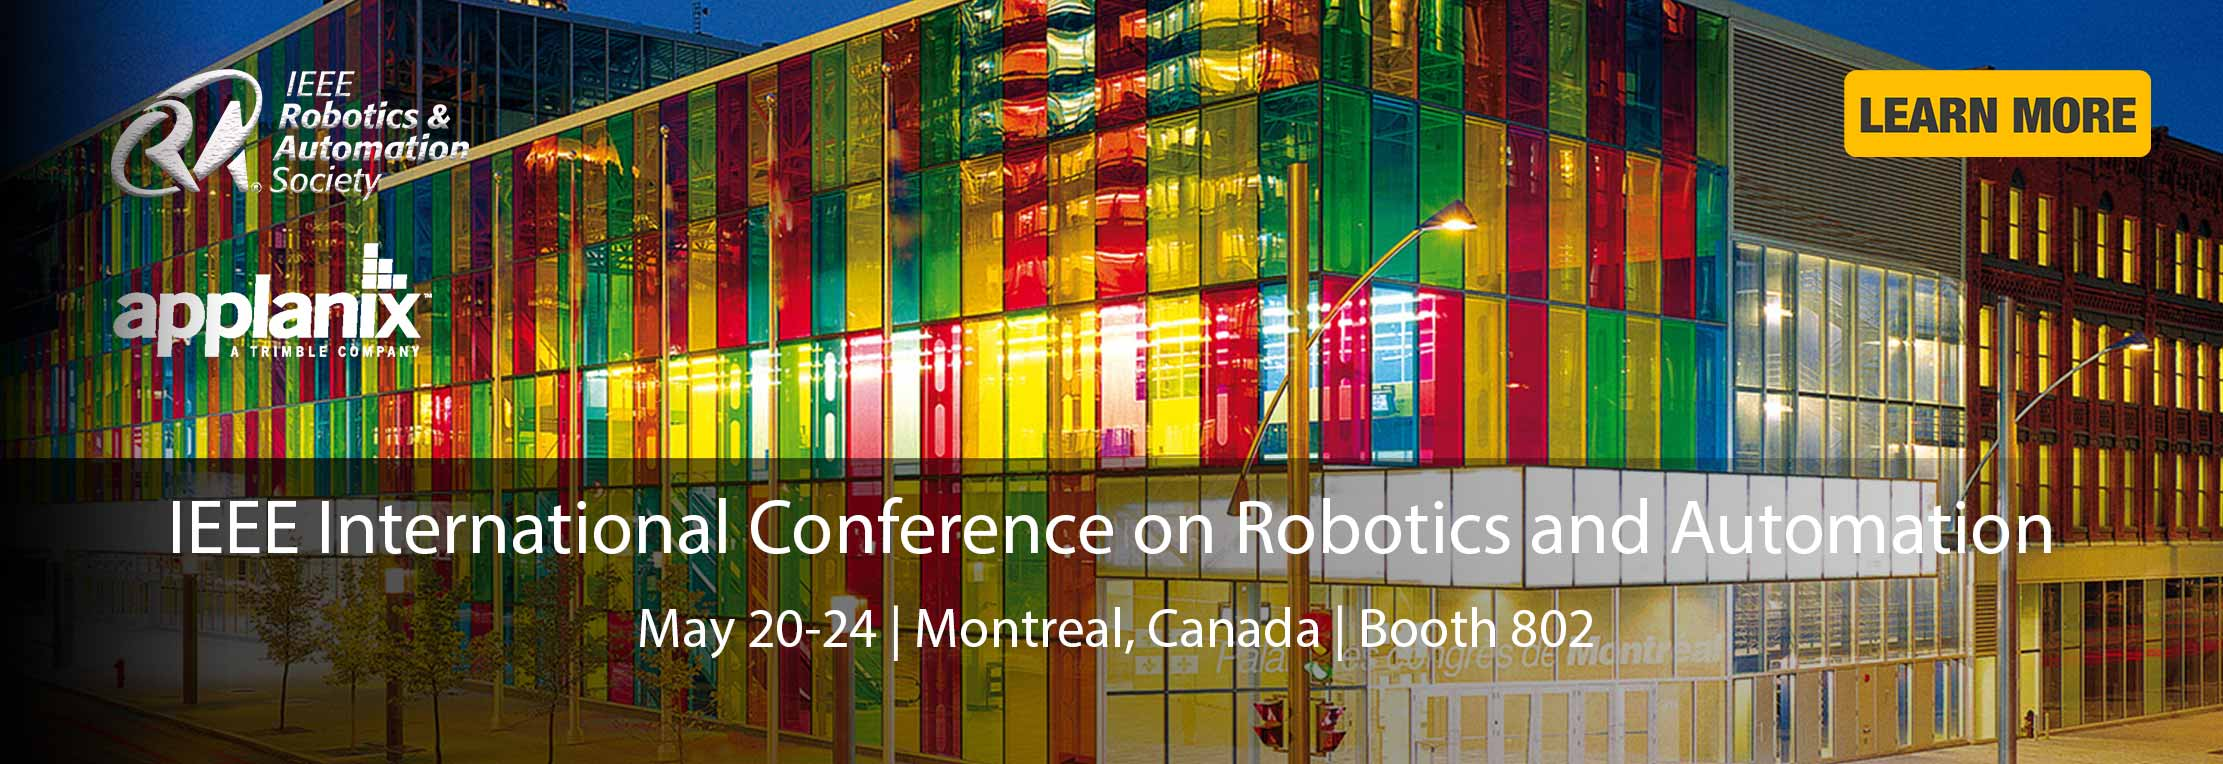 International Conference on Robotics and Automation